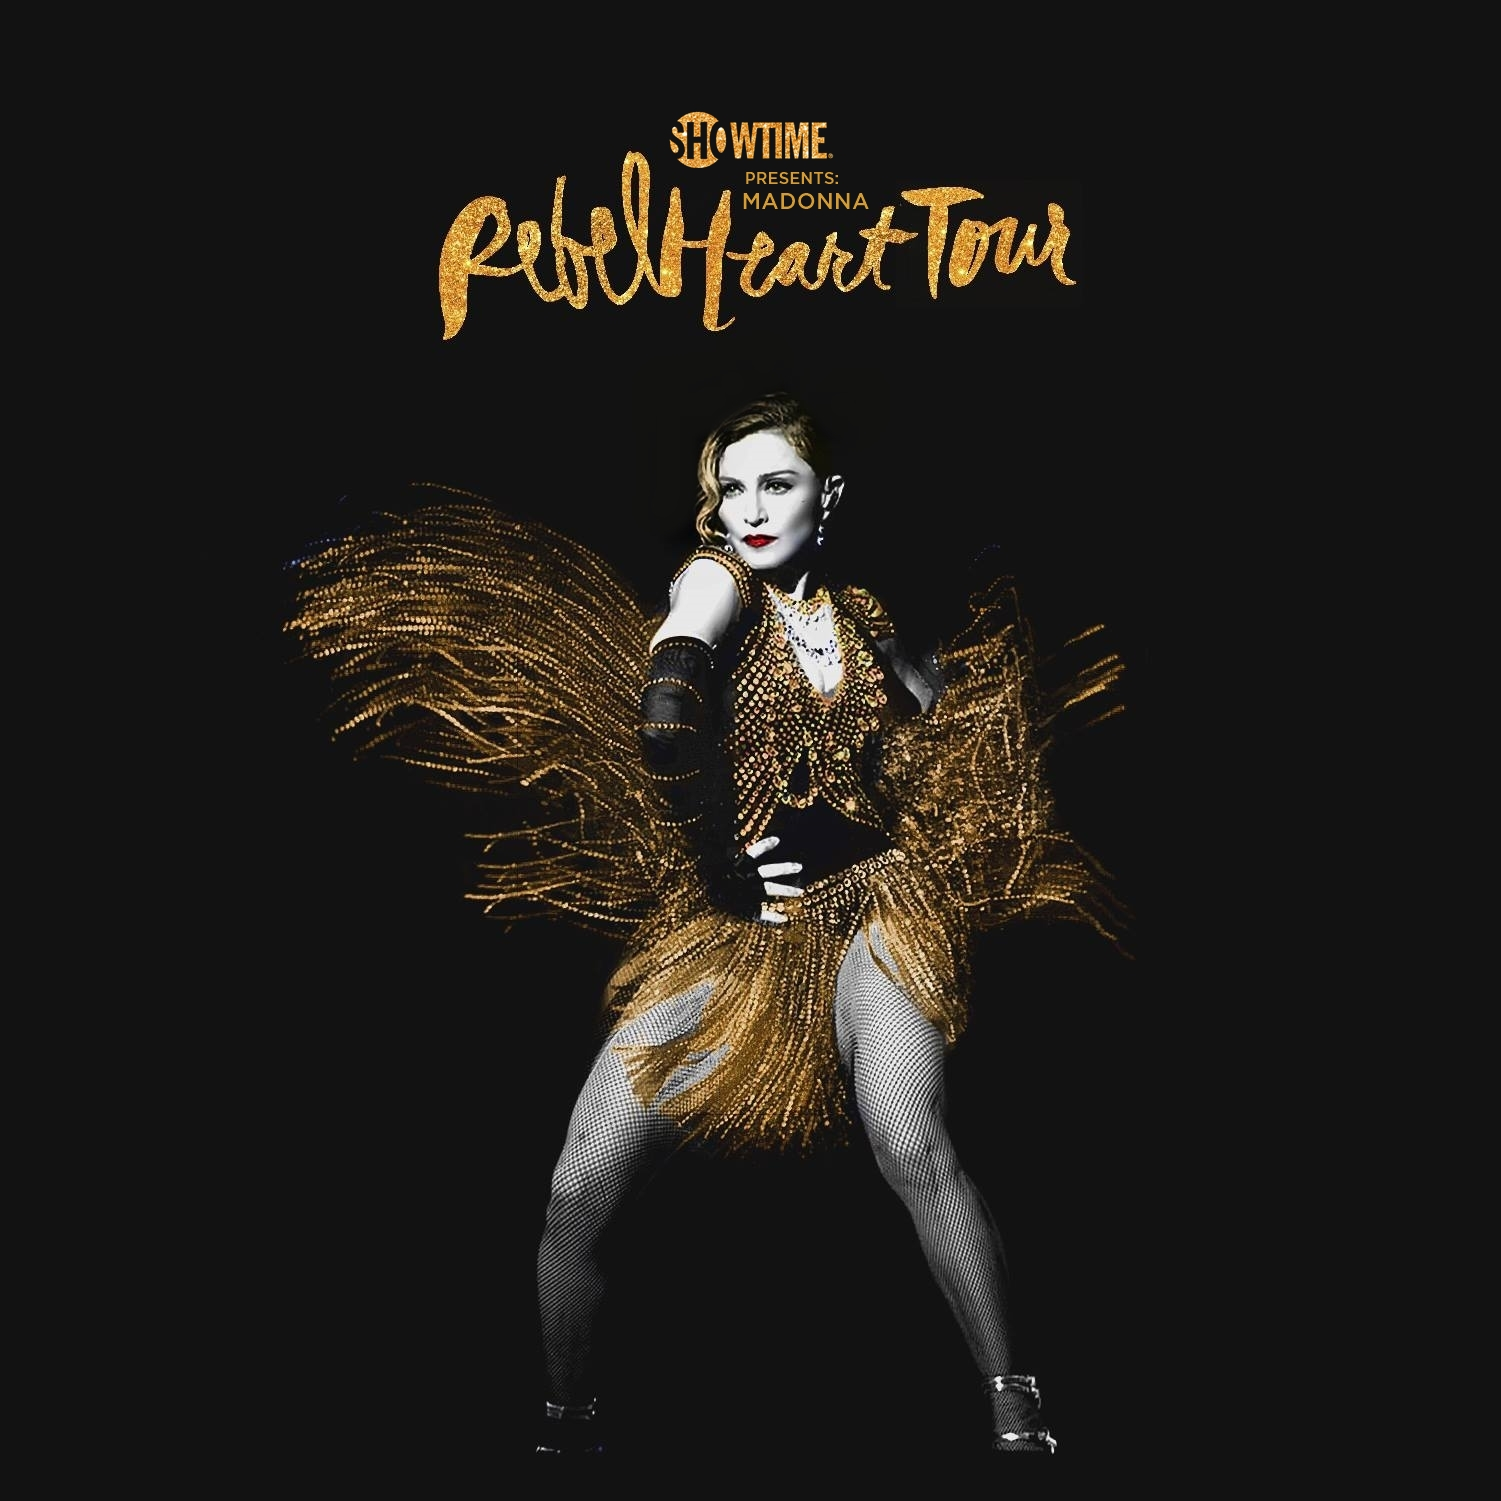 Rebel Heart Tour Showtime